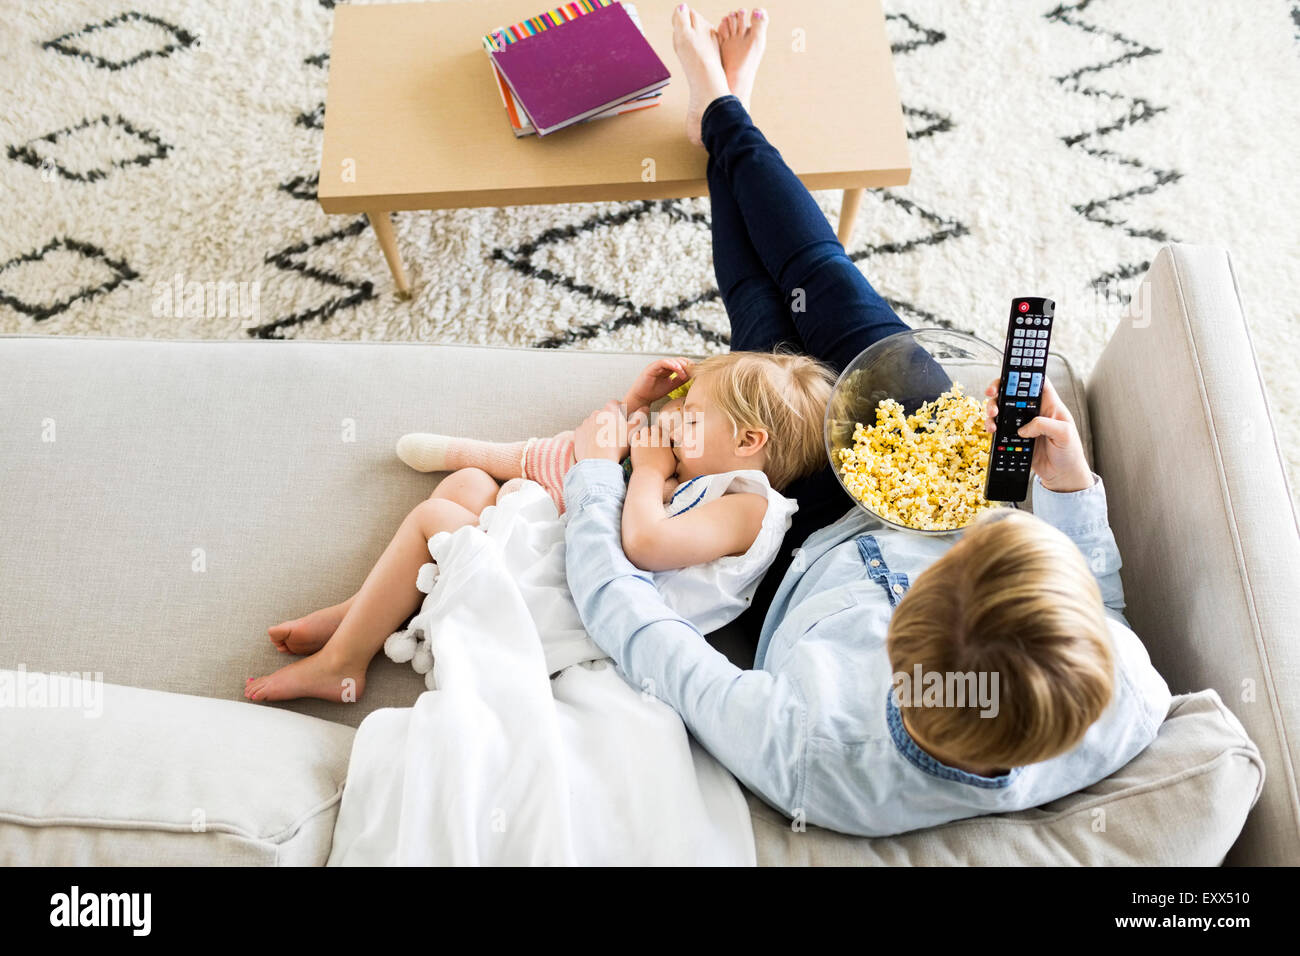 Girl (2-3) sleeping on mom's lap - Stock Image